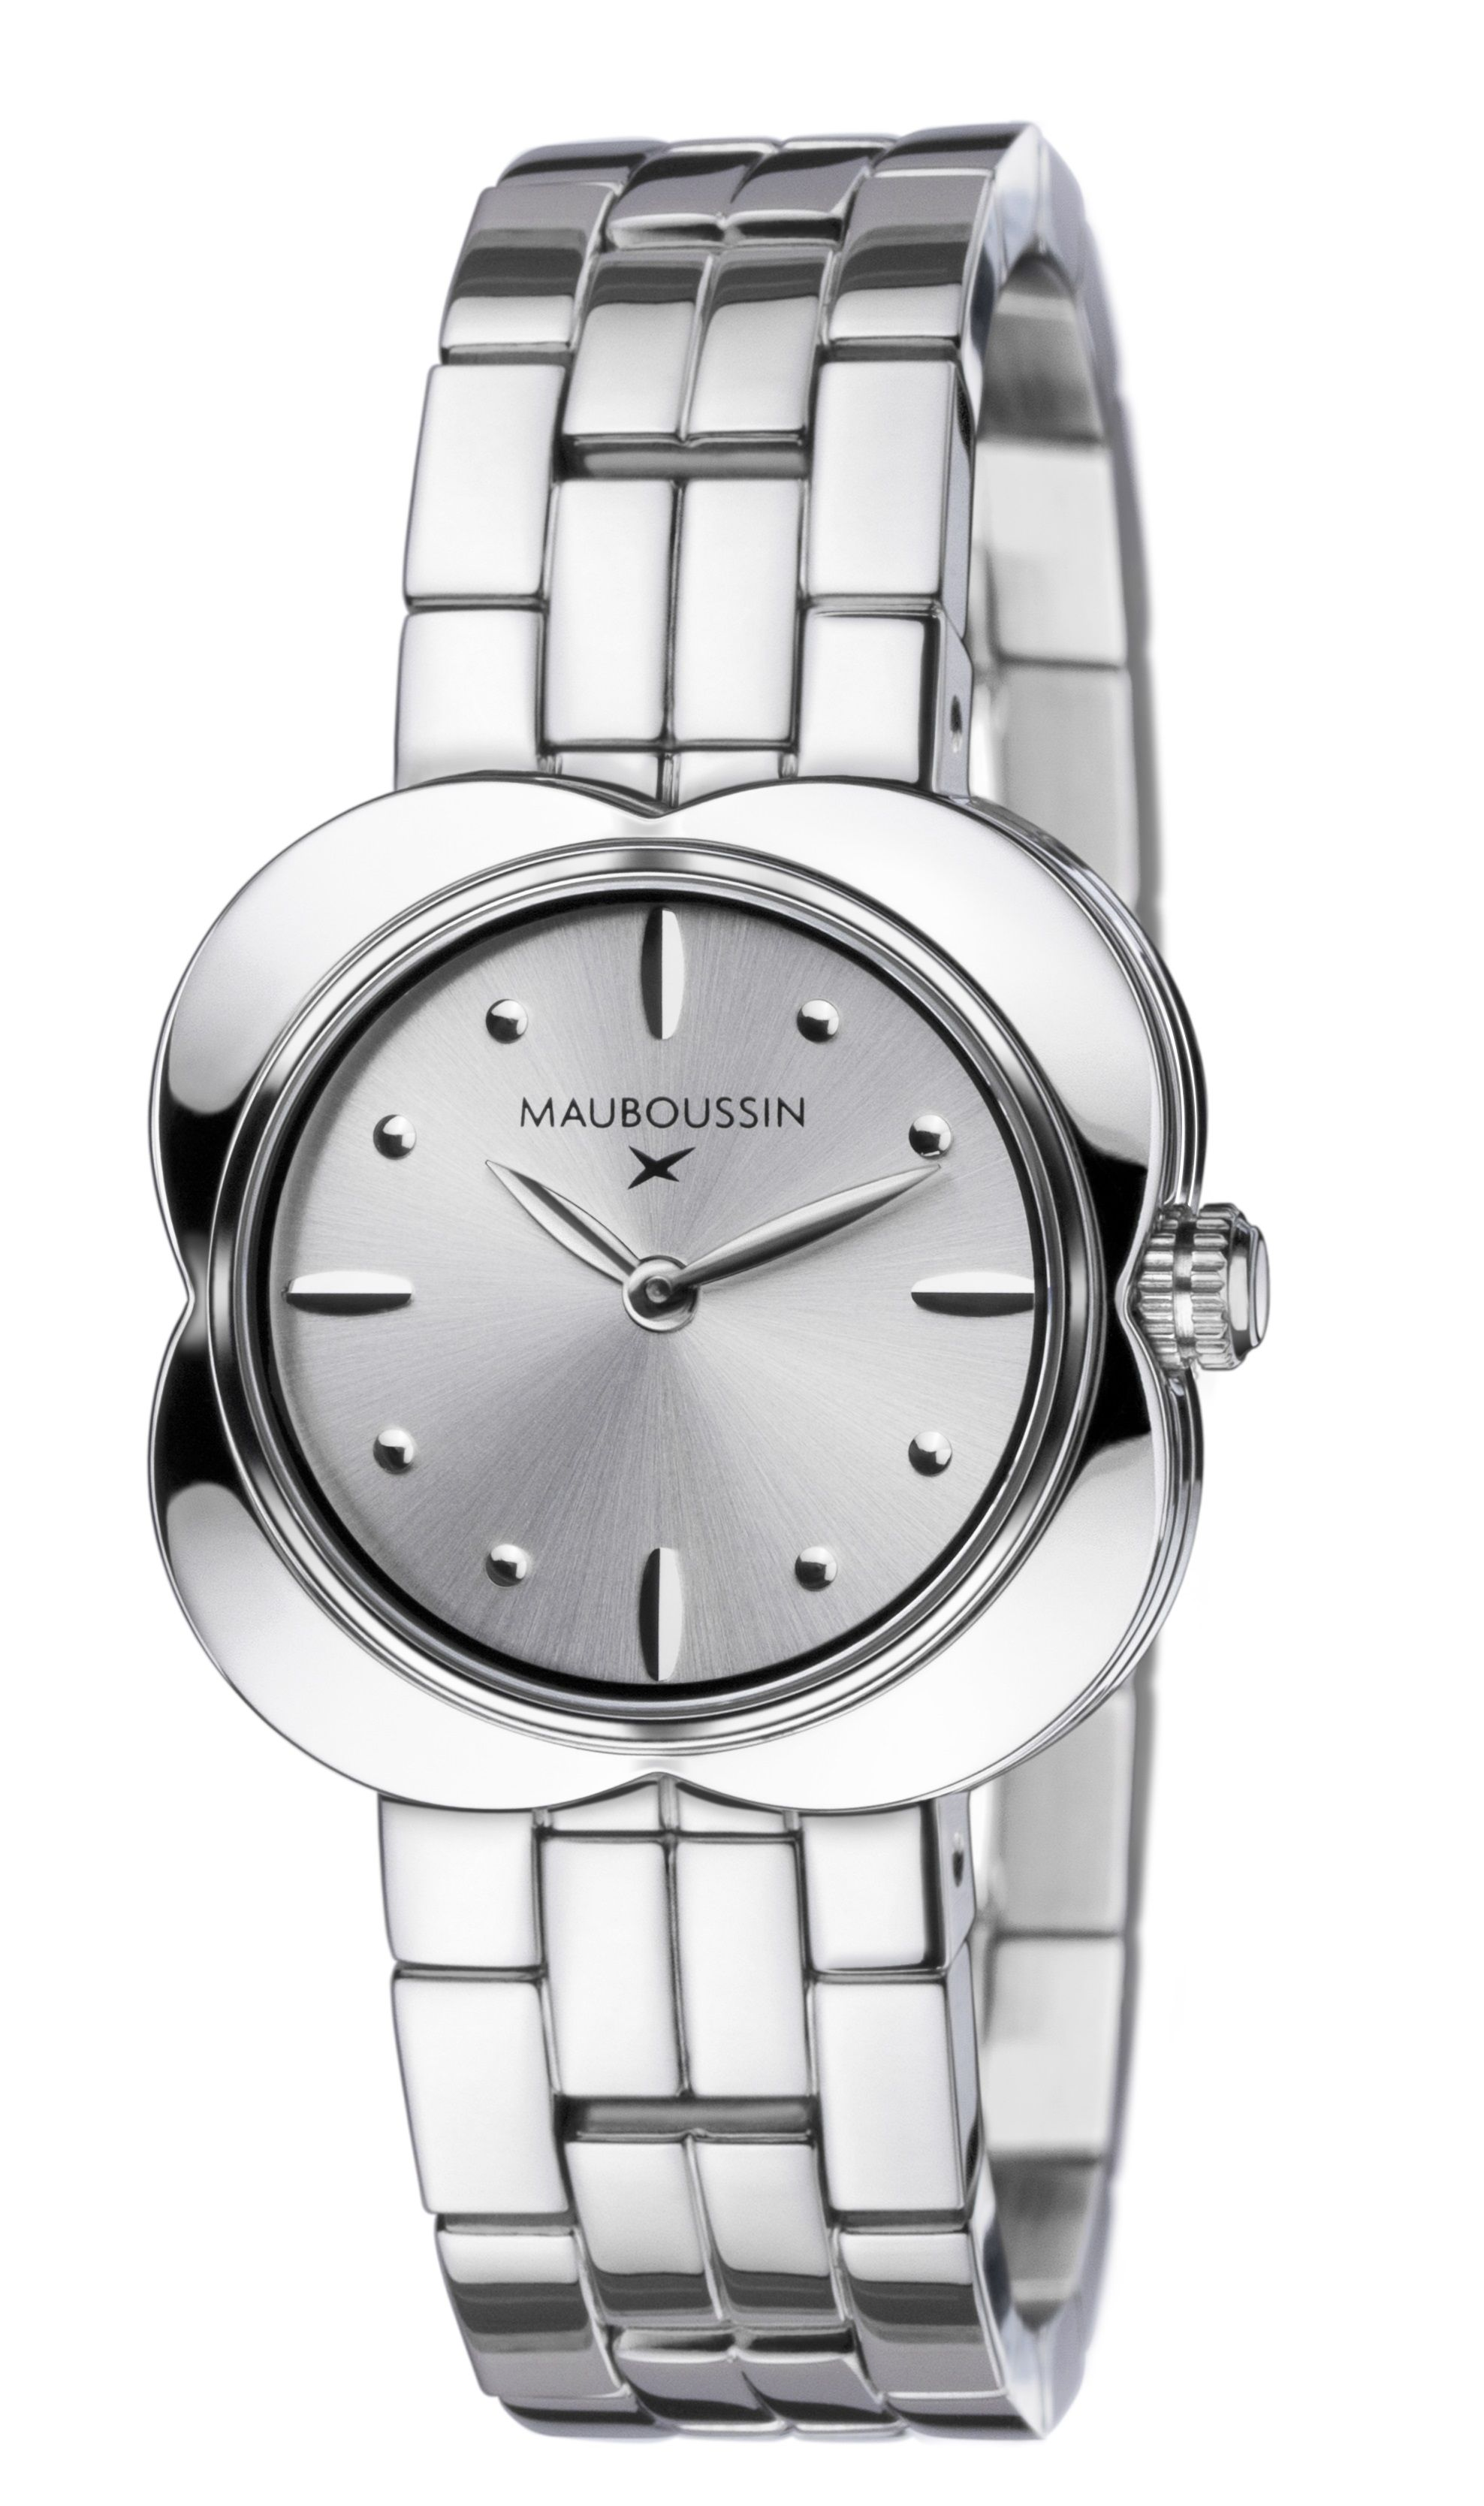 436d1fd8d49 Montre Chance Day Watch Montre Mauboussin Femme